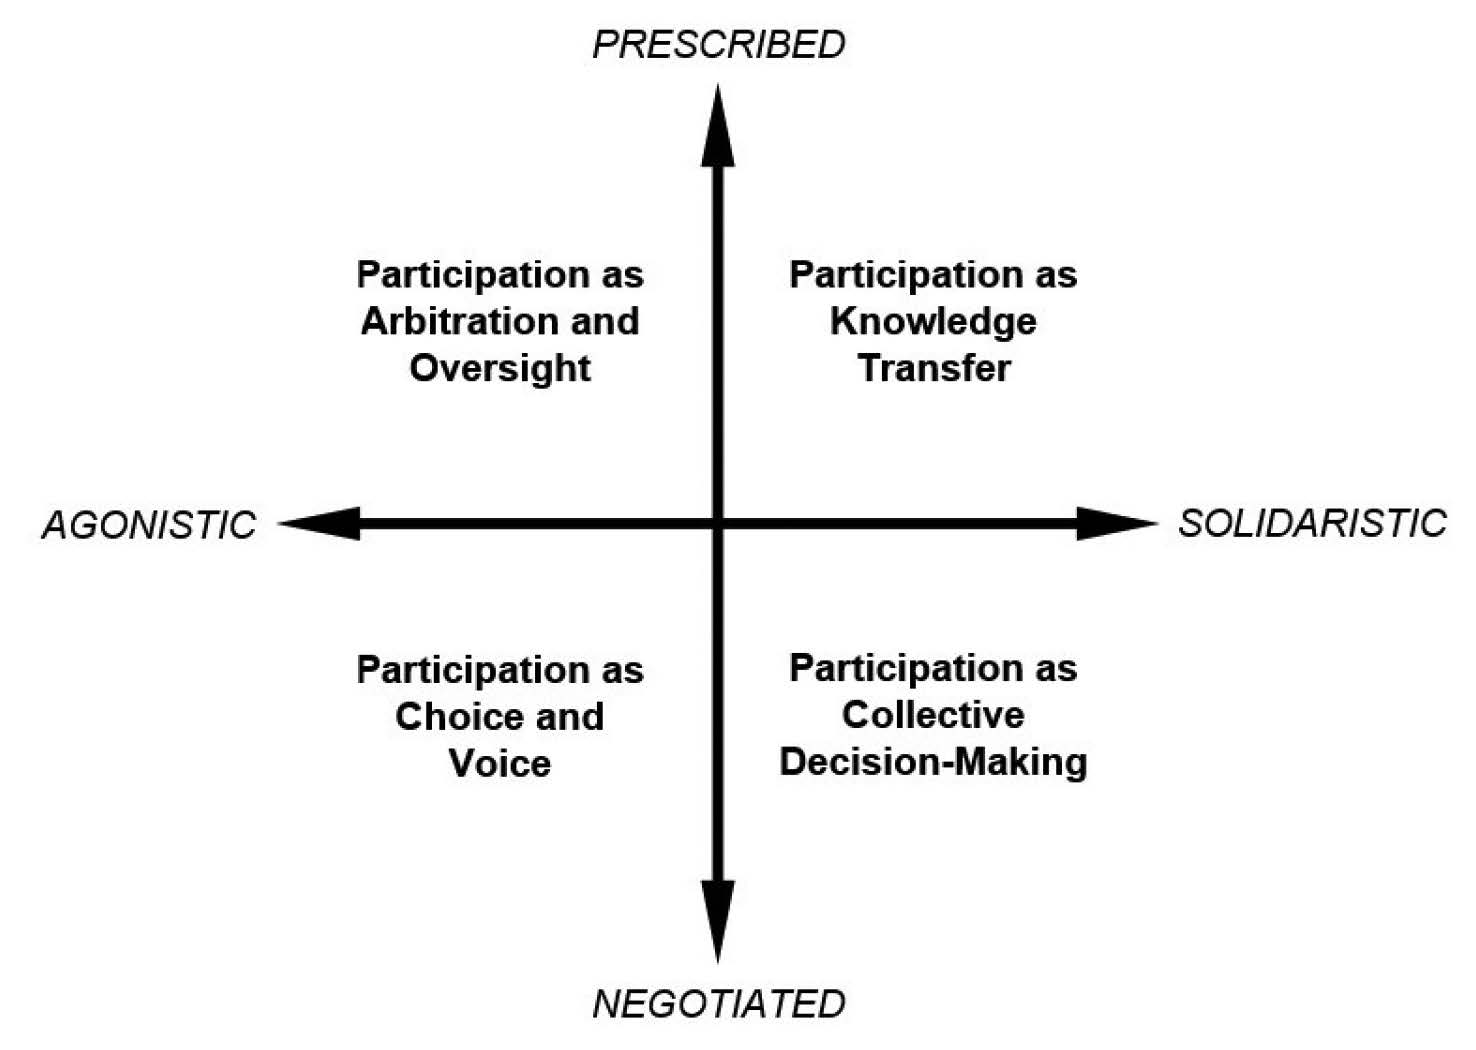 Figure 11: Four Modes of Participation in Policy Decisions